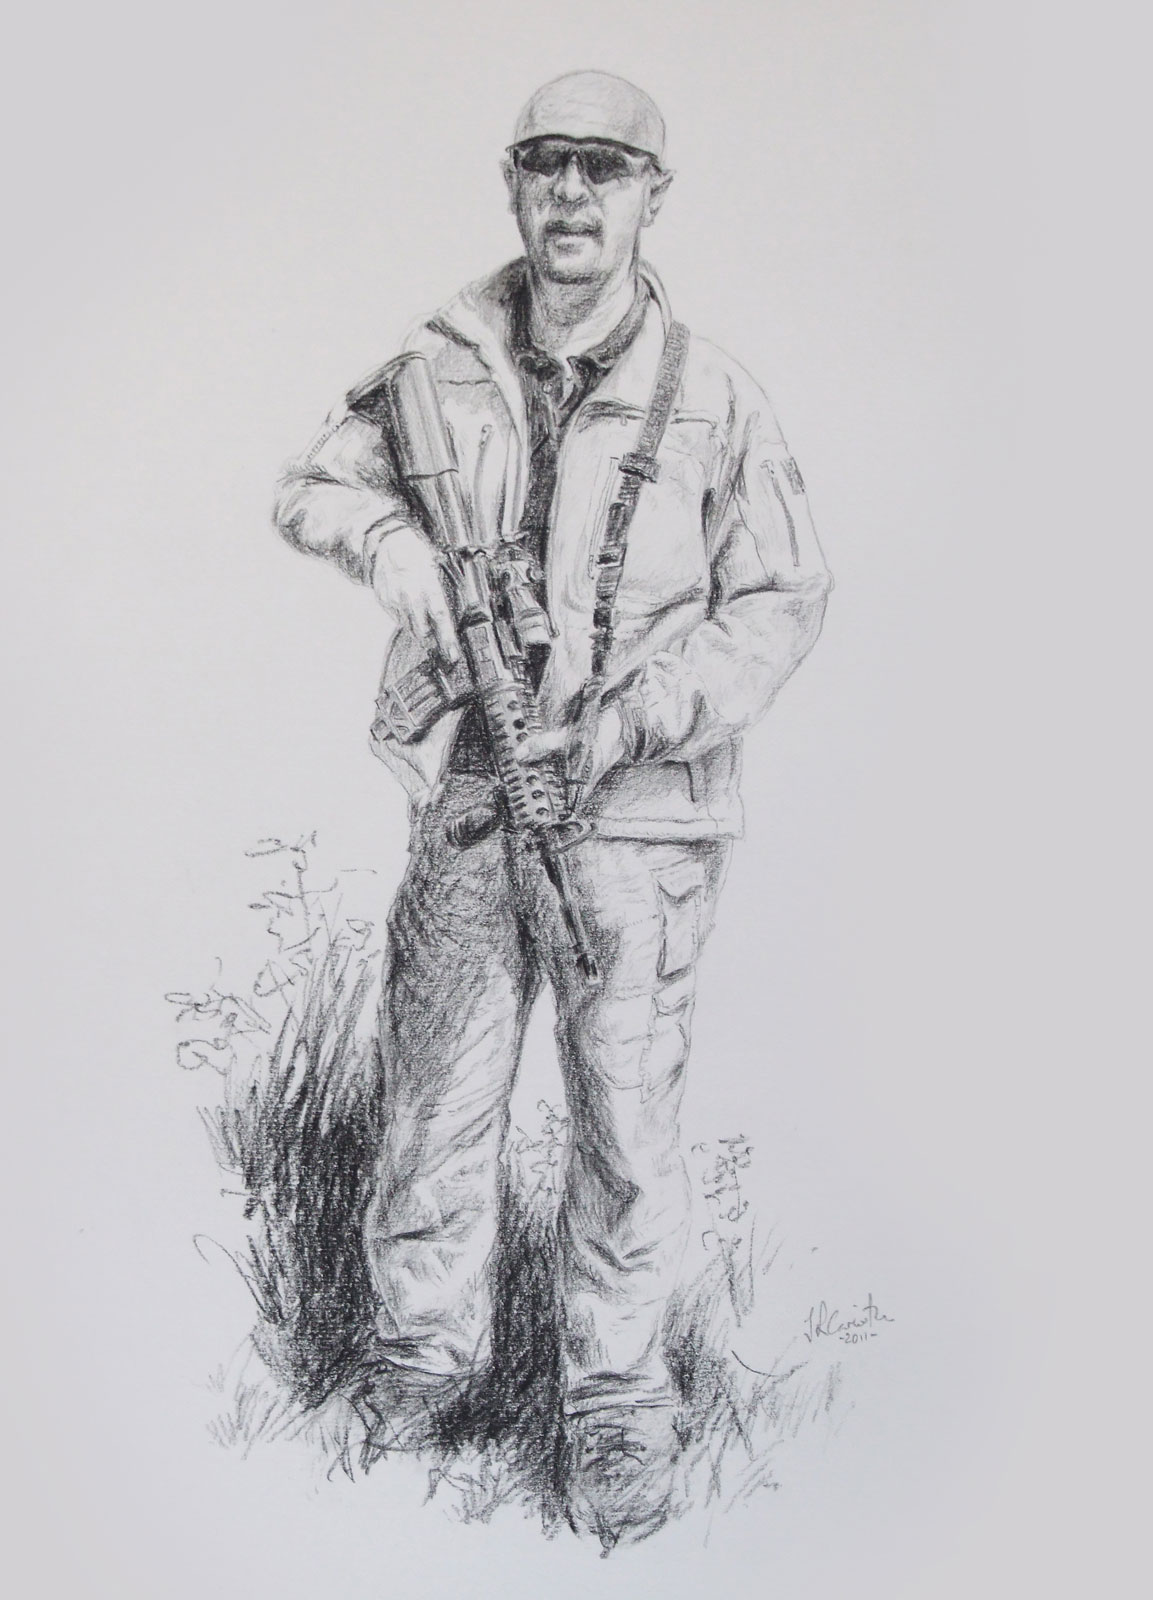 Male special forces portrait drawing on paper